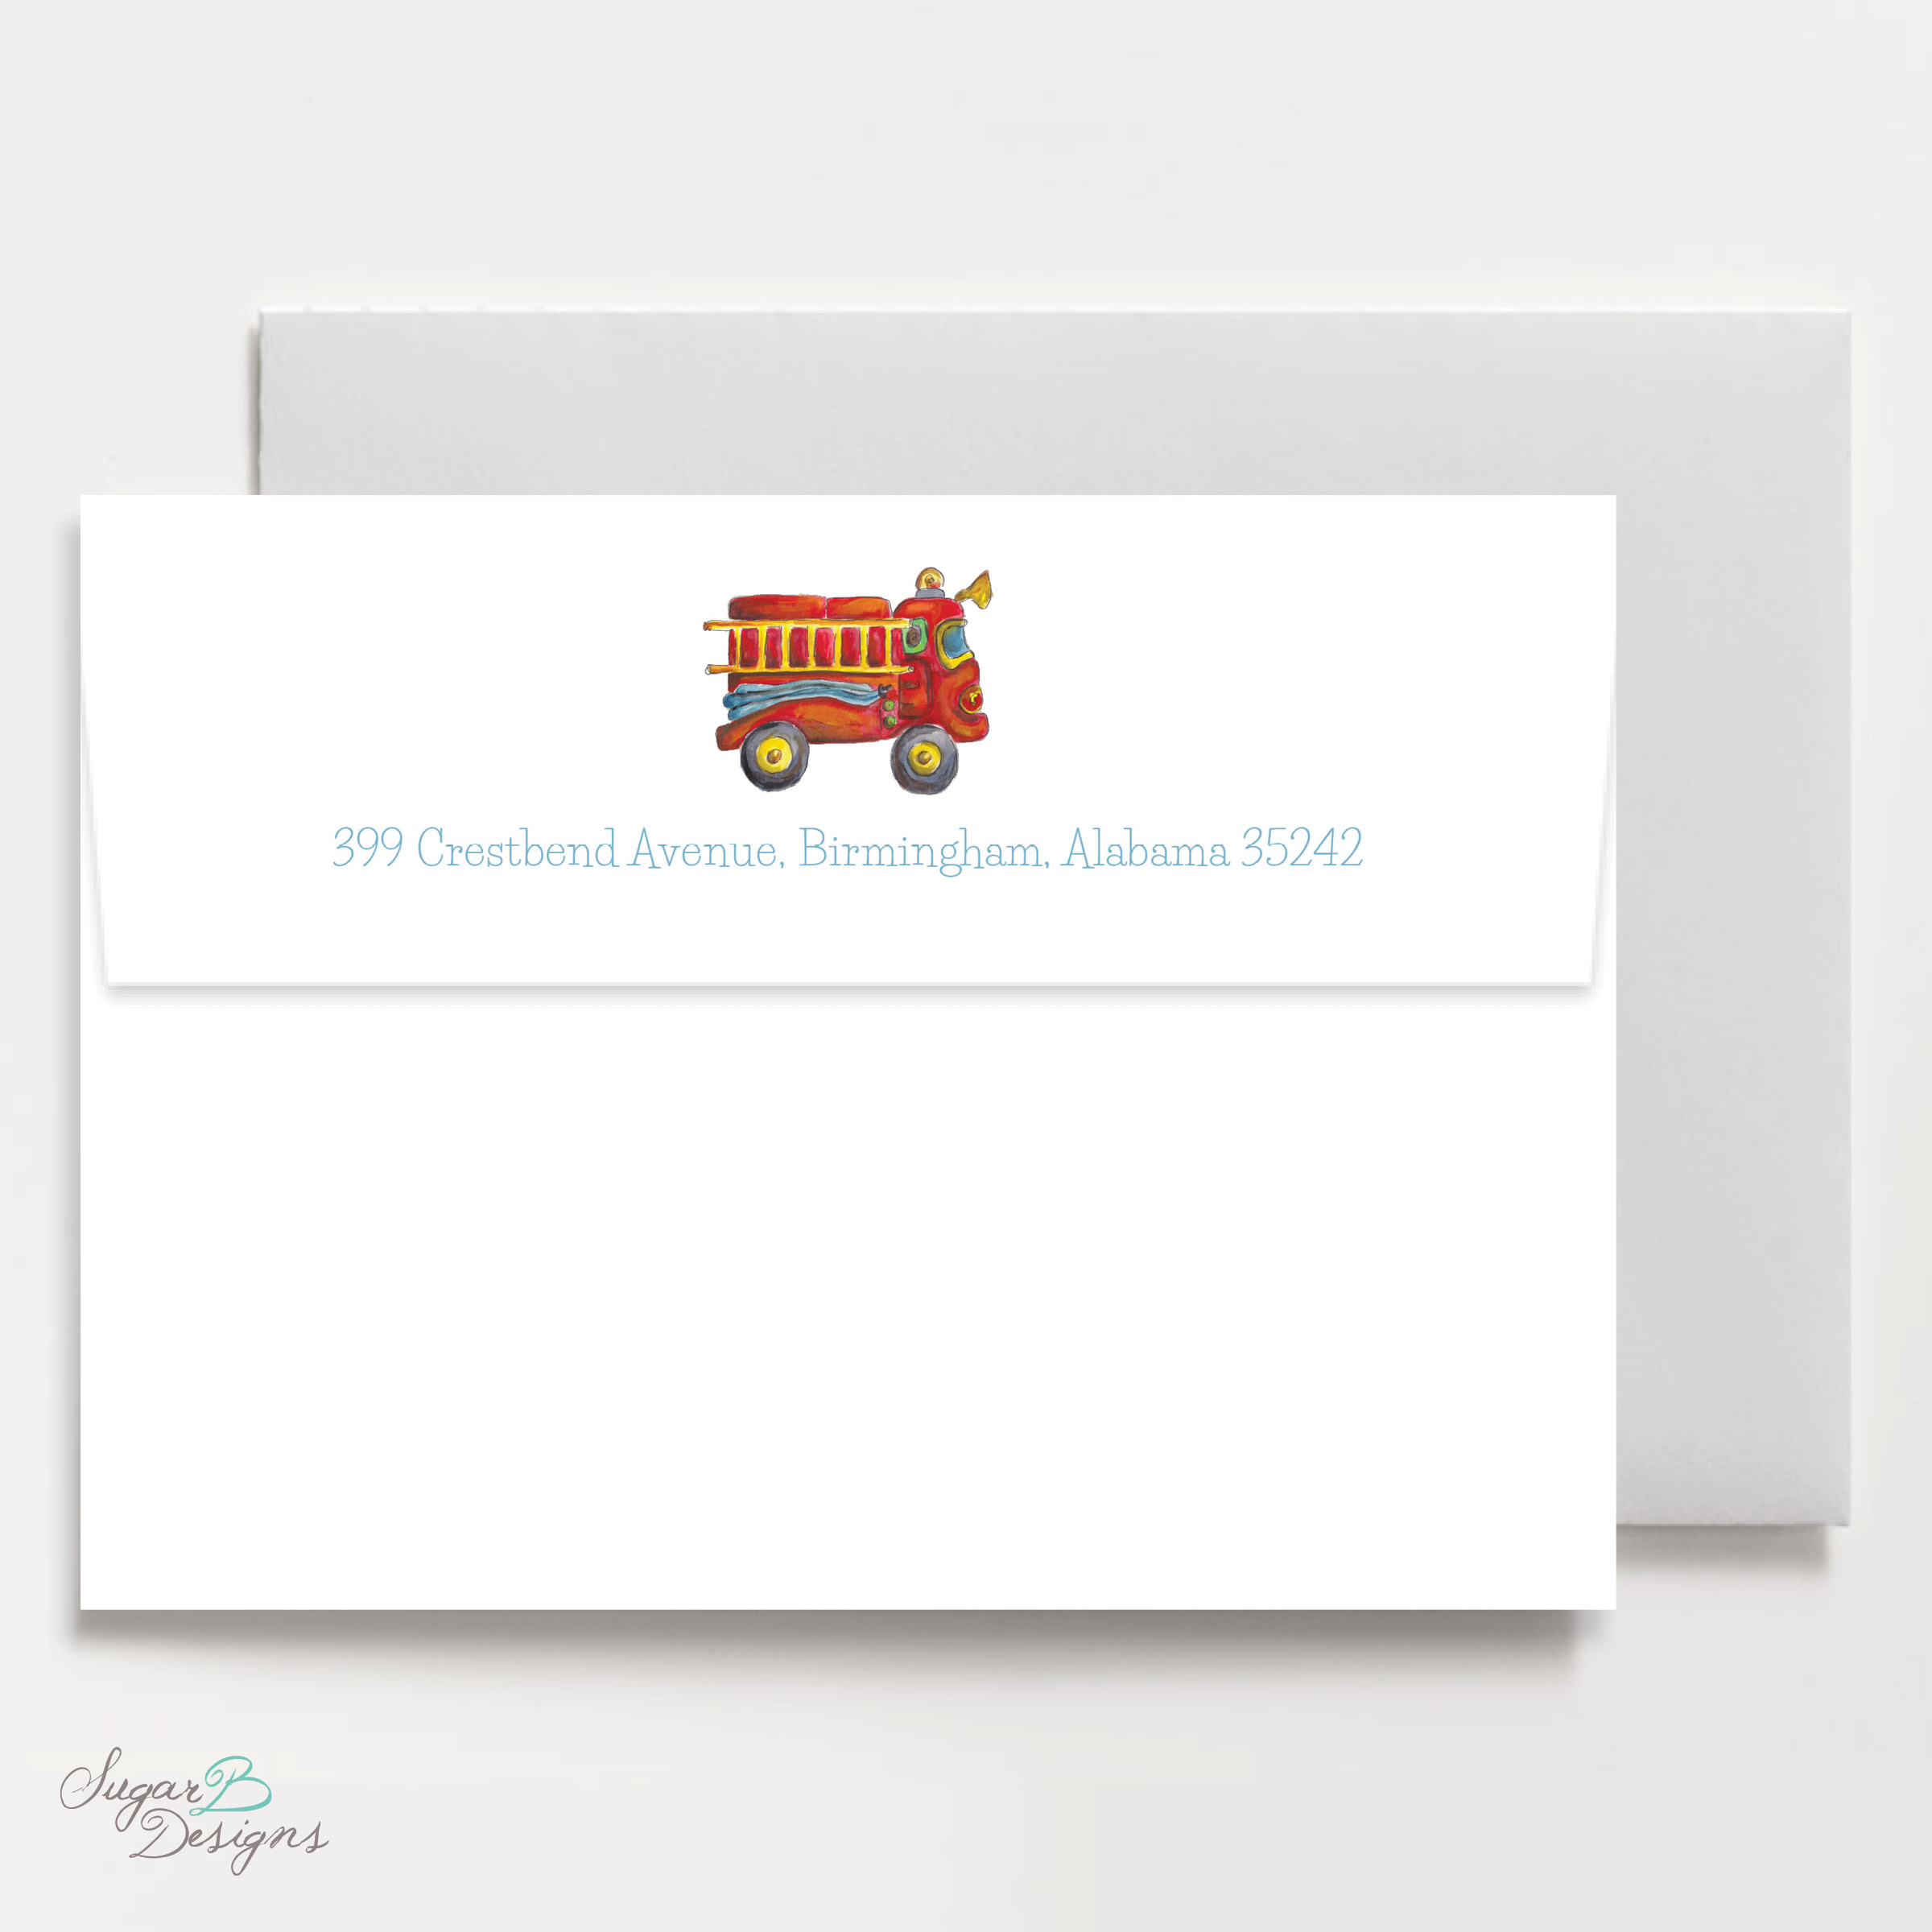 Firetruck Return Address Print